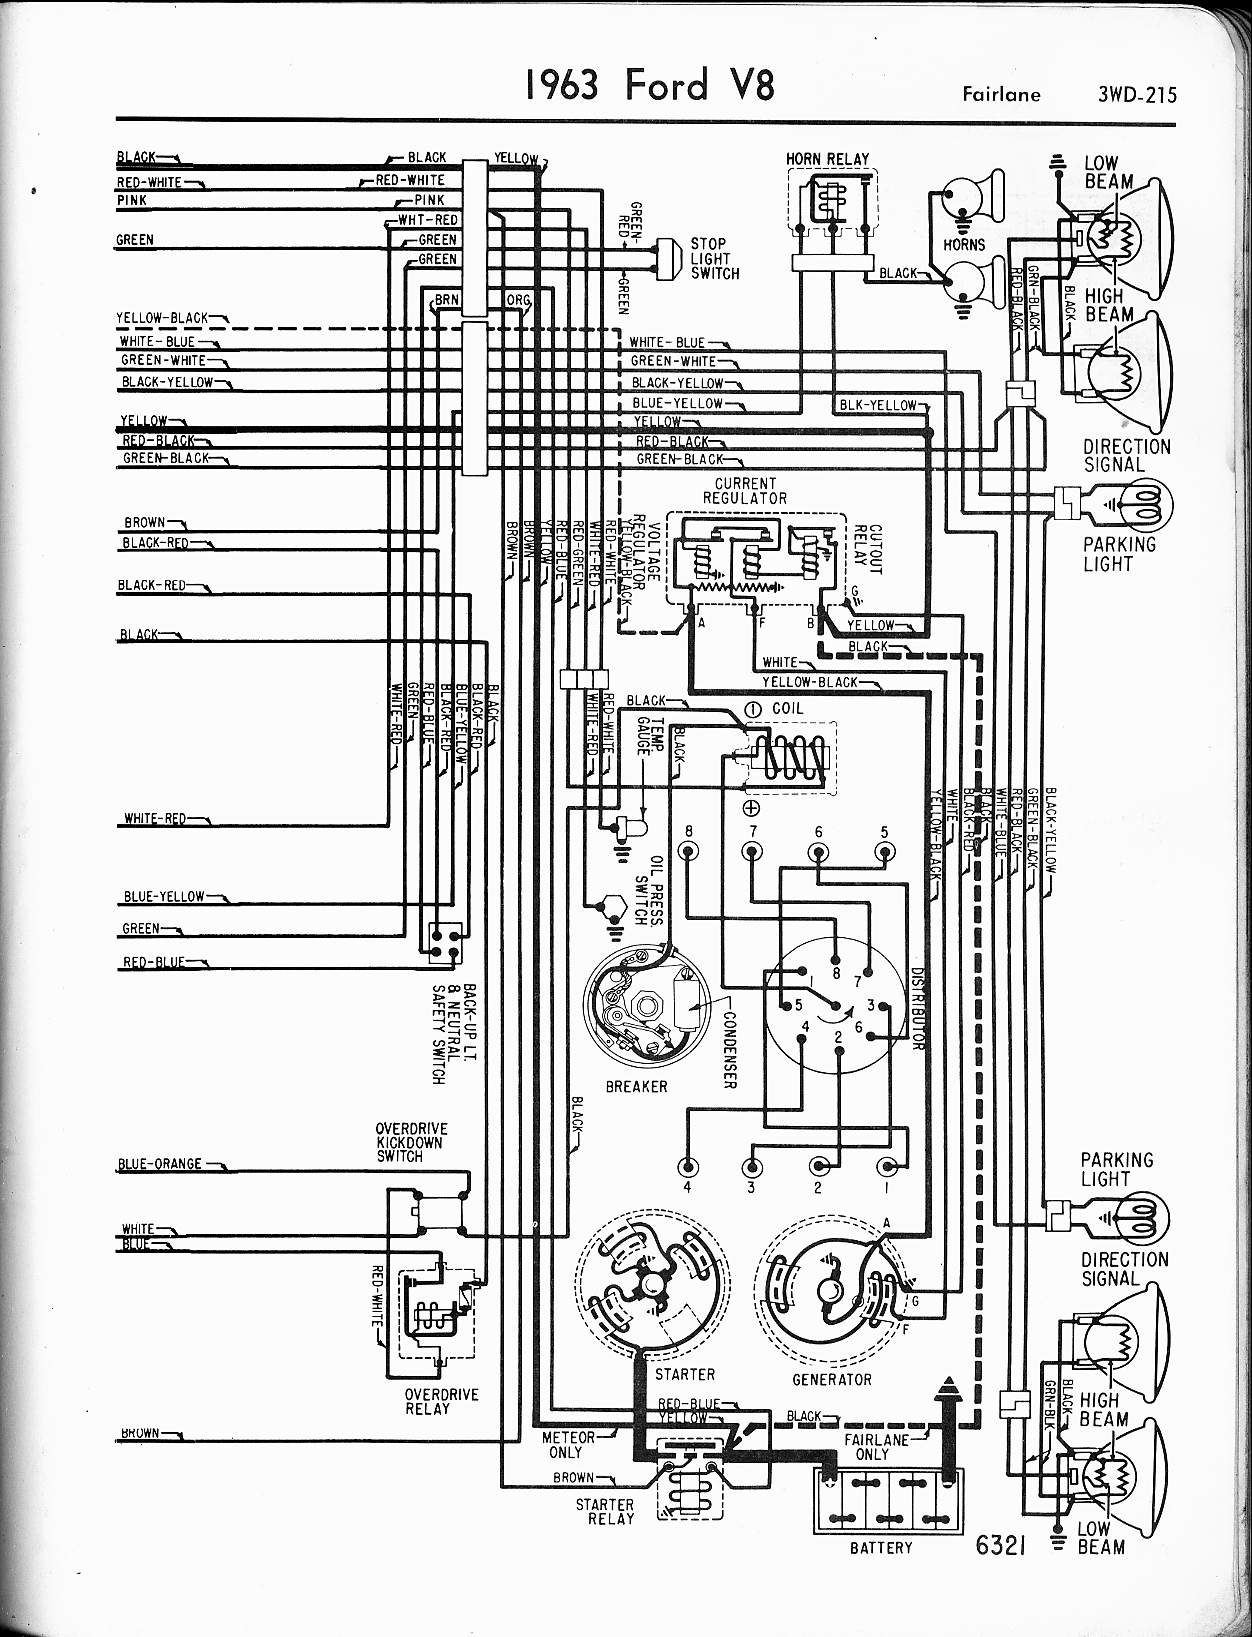 [SCHEMATICS_4PO]  1966 Falcon Wiring Diagrams 2006 Honda Pilot Wiring Harness -  dumble.hazzard.astrea-construction.fr | 1966 Falcon Wiring Diagrams |  | ASTREA CONSTRUCTION